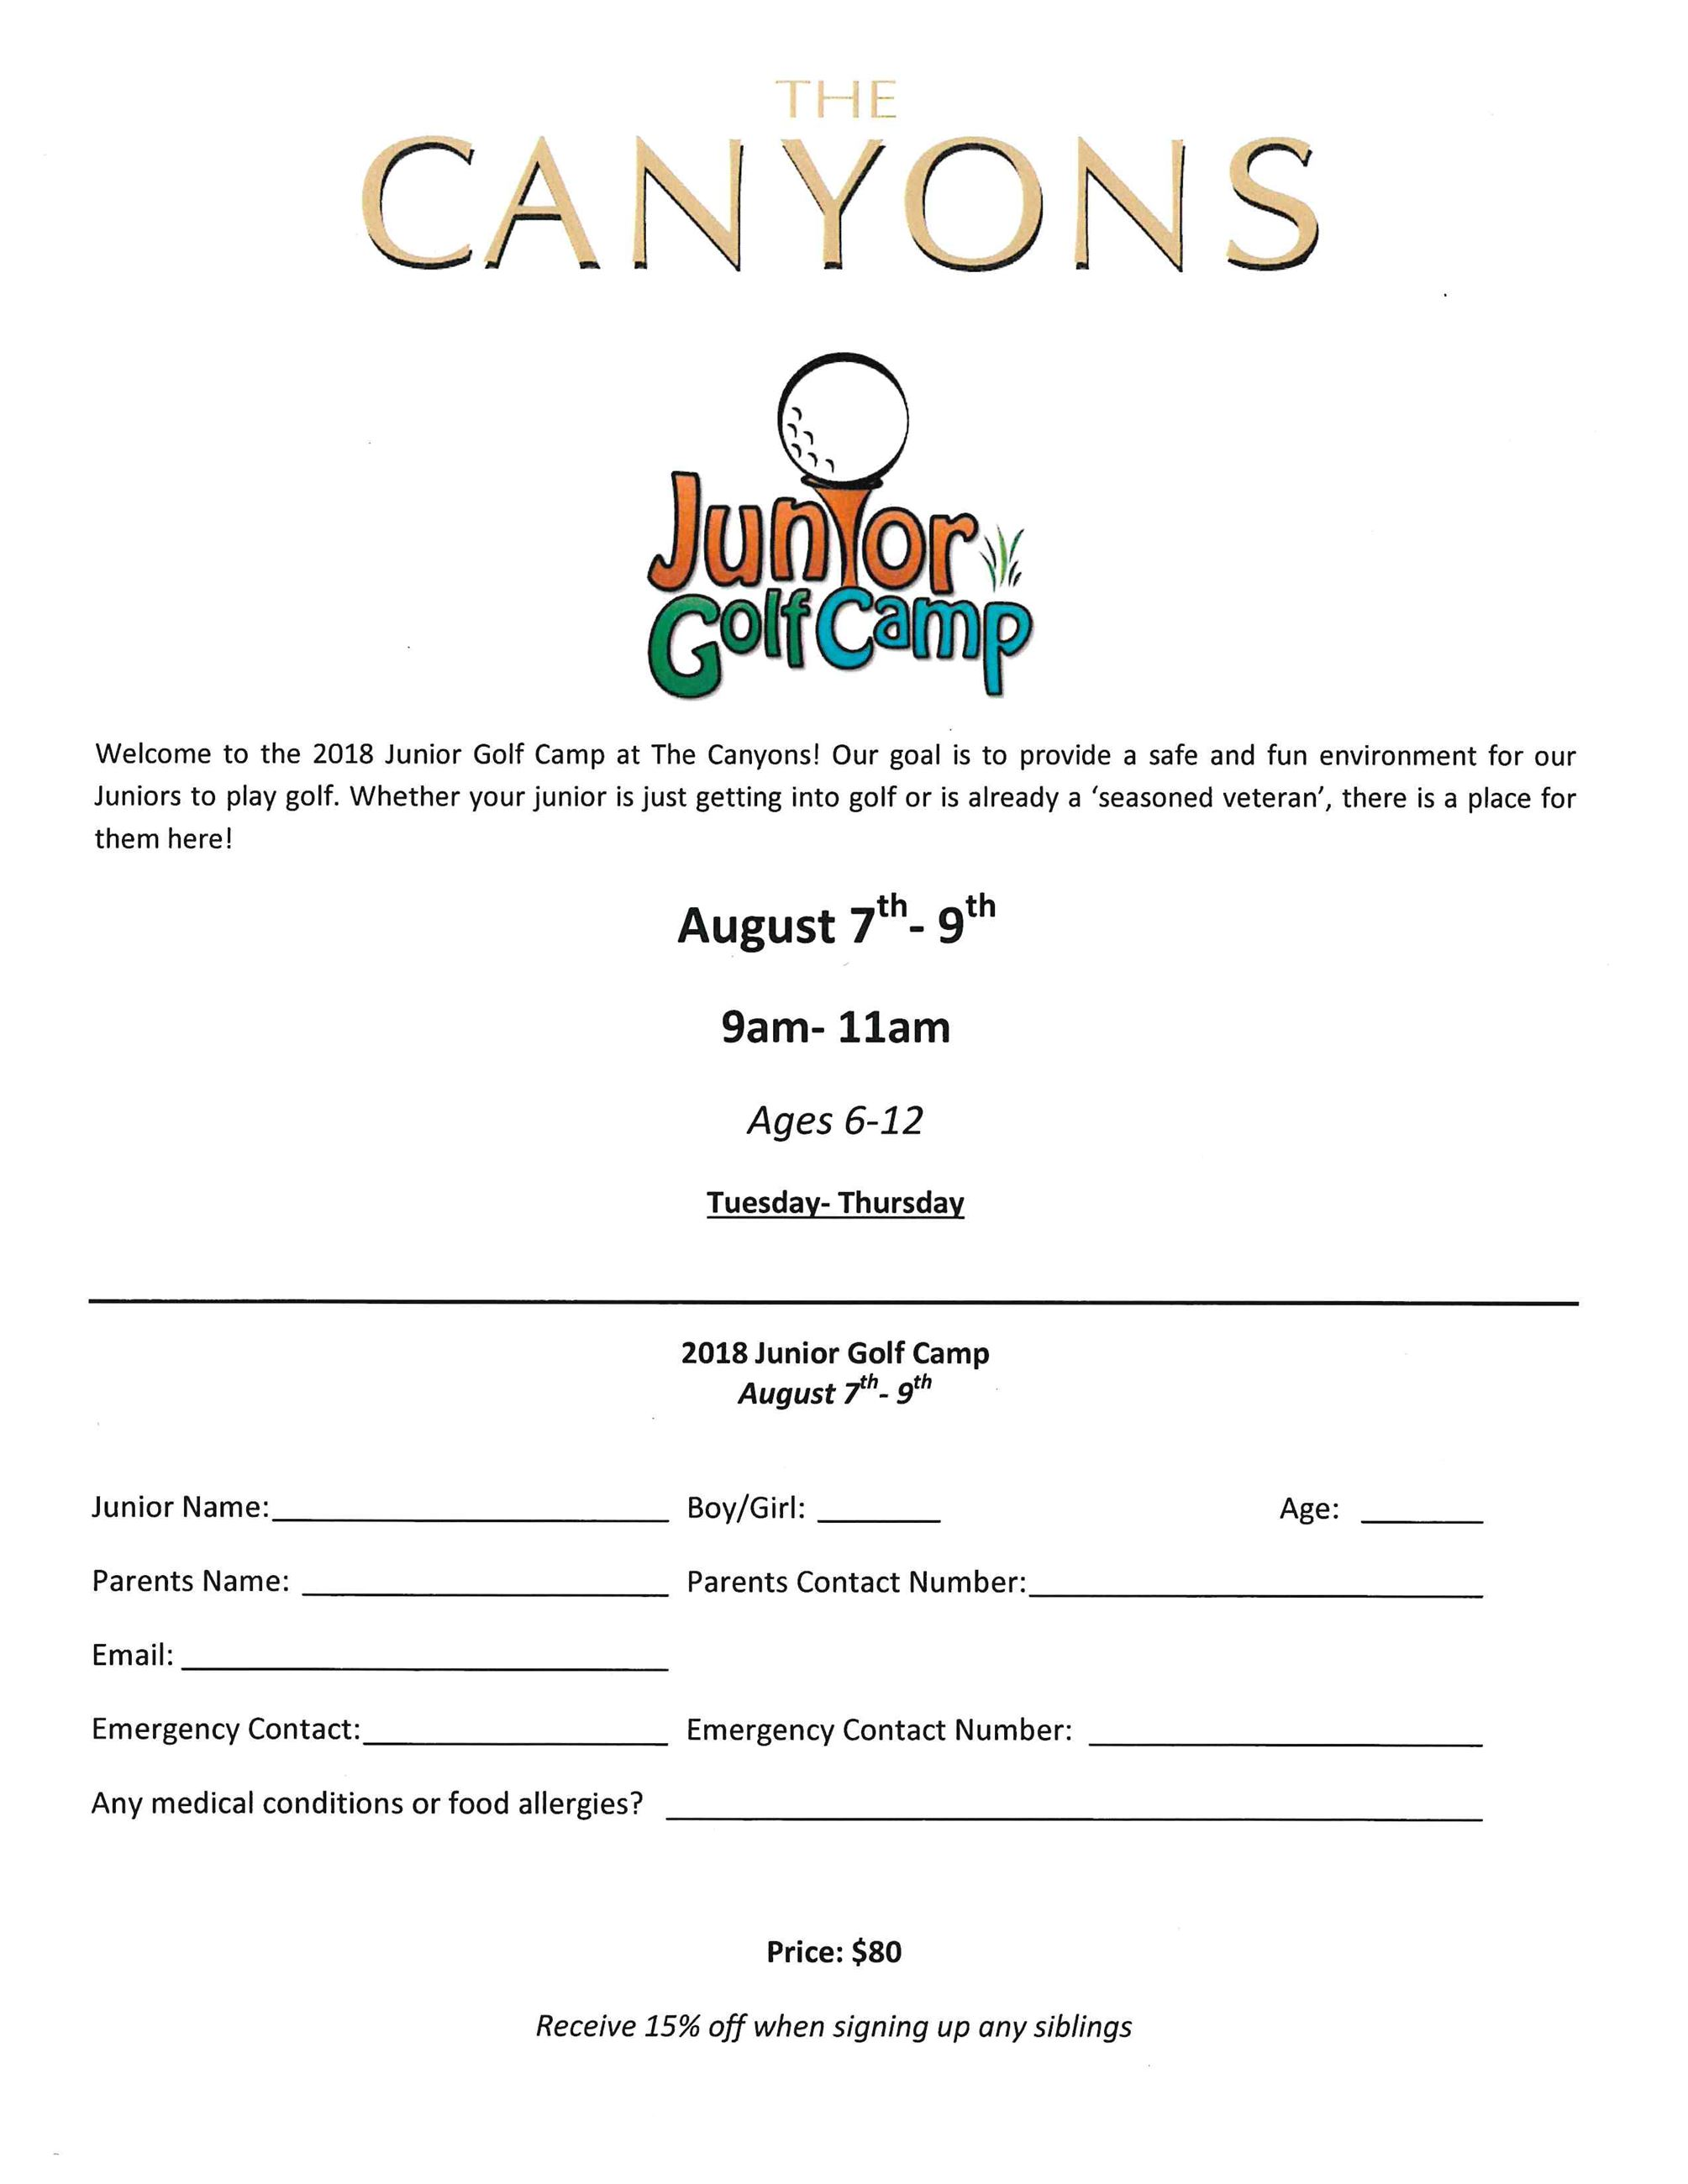 Junior Golf Camp flyer